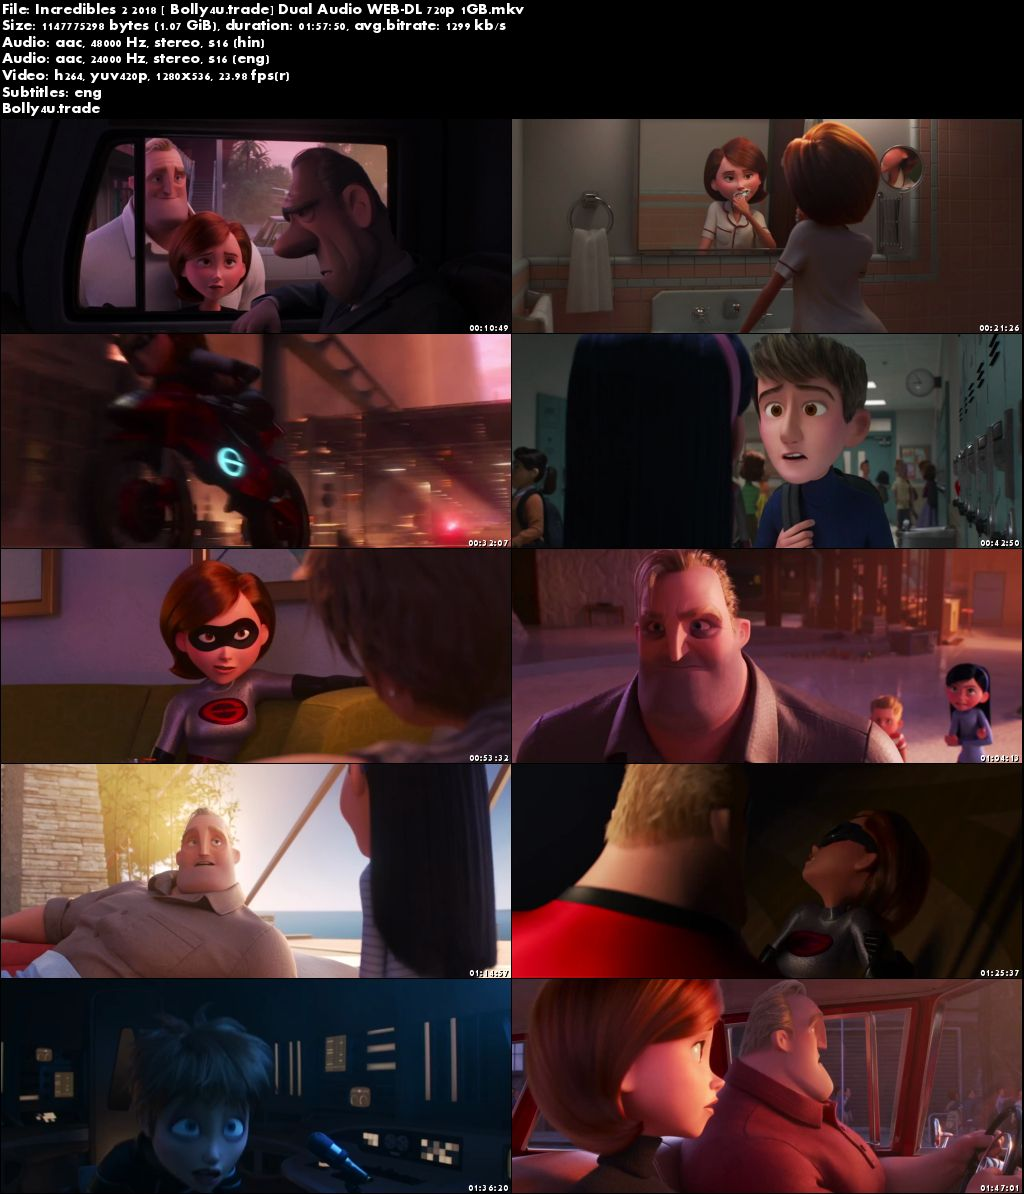 Incredibles 2 2018 WEB-DL 1Gb Hindi Dual Audio 720p ESub Download